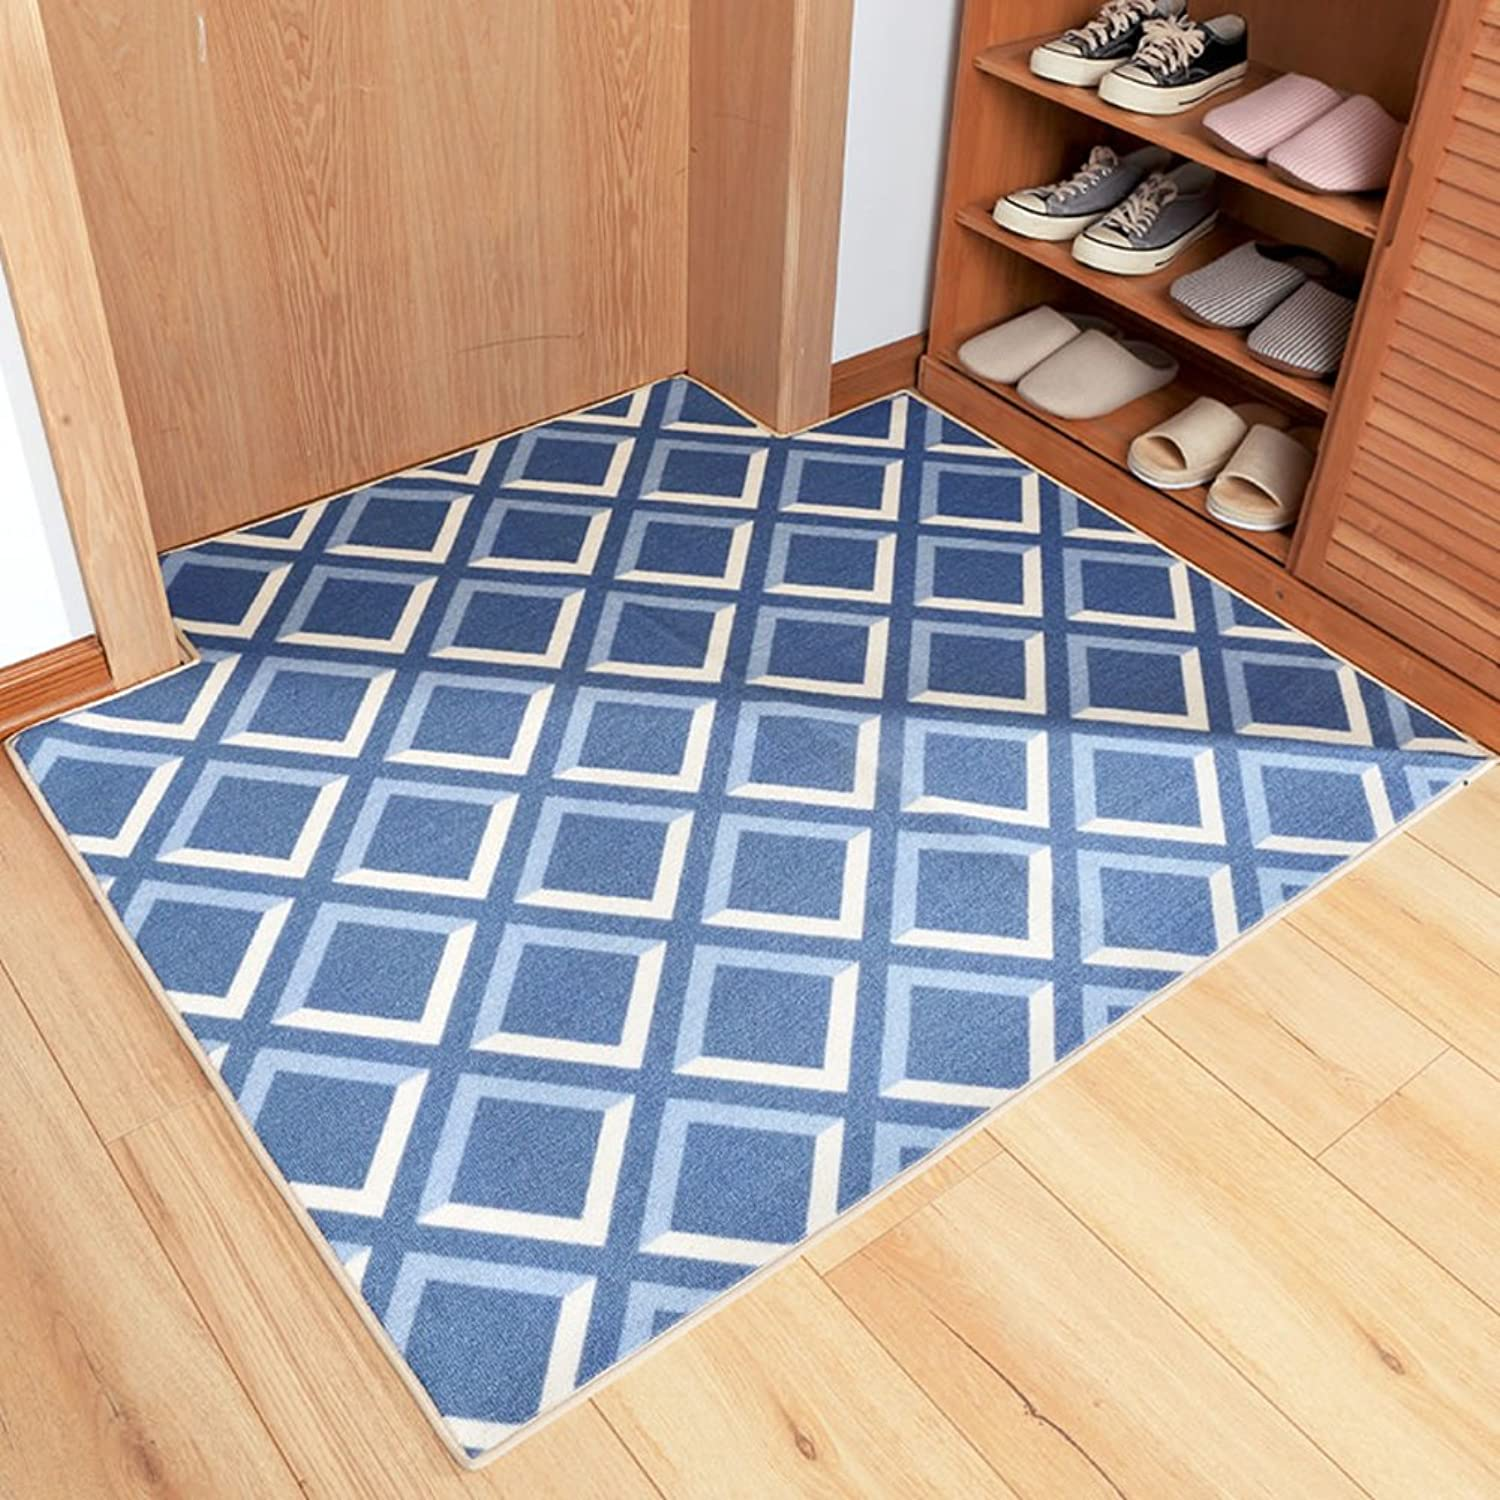 Into The Household Carpet Rubber Back Lining Living Room Small Carpet with Non-Slip mat Bedside Non-Slip Carpet-A 80x120cm(31x47inch)